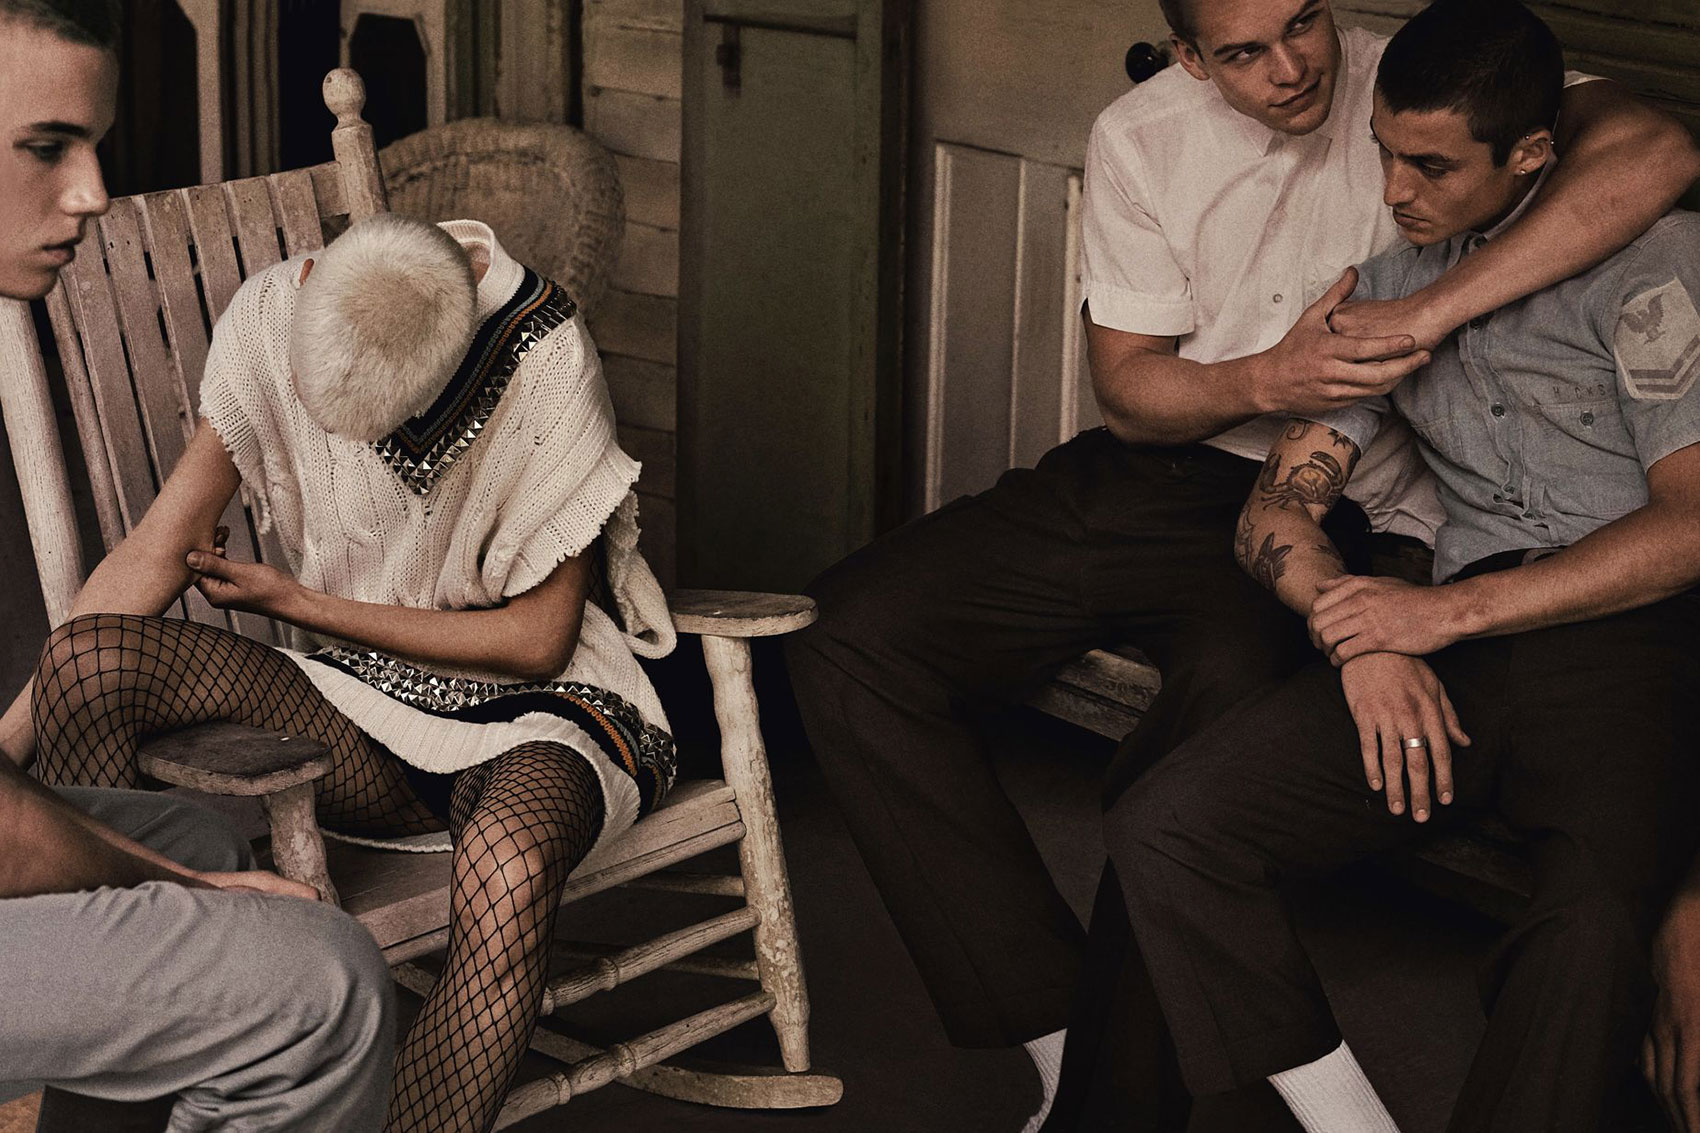 kris-gottschalk-by-phil-poynter-for-vogue-germany-may-2016-8